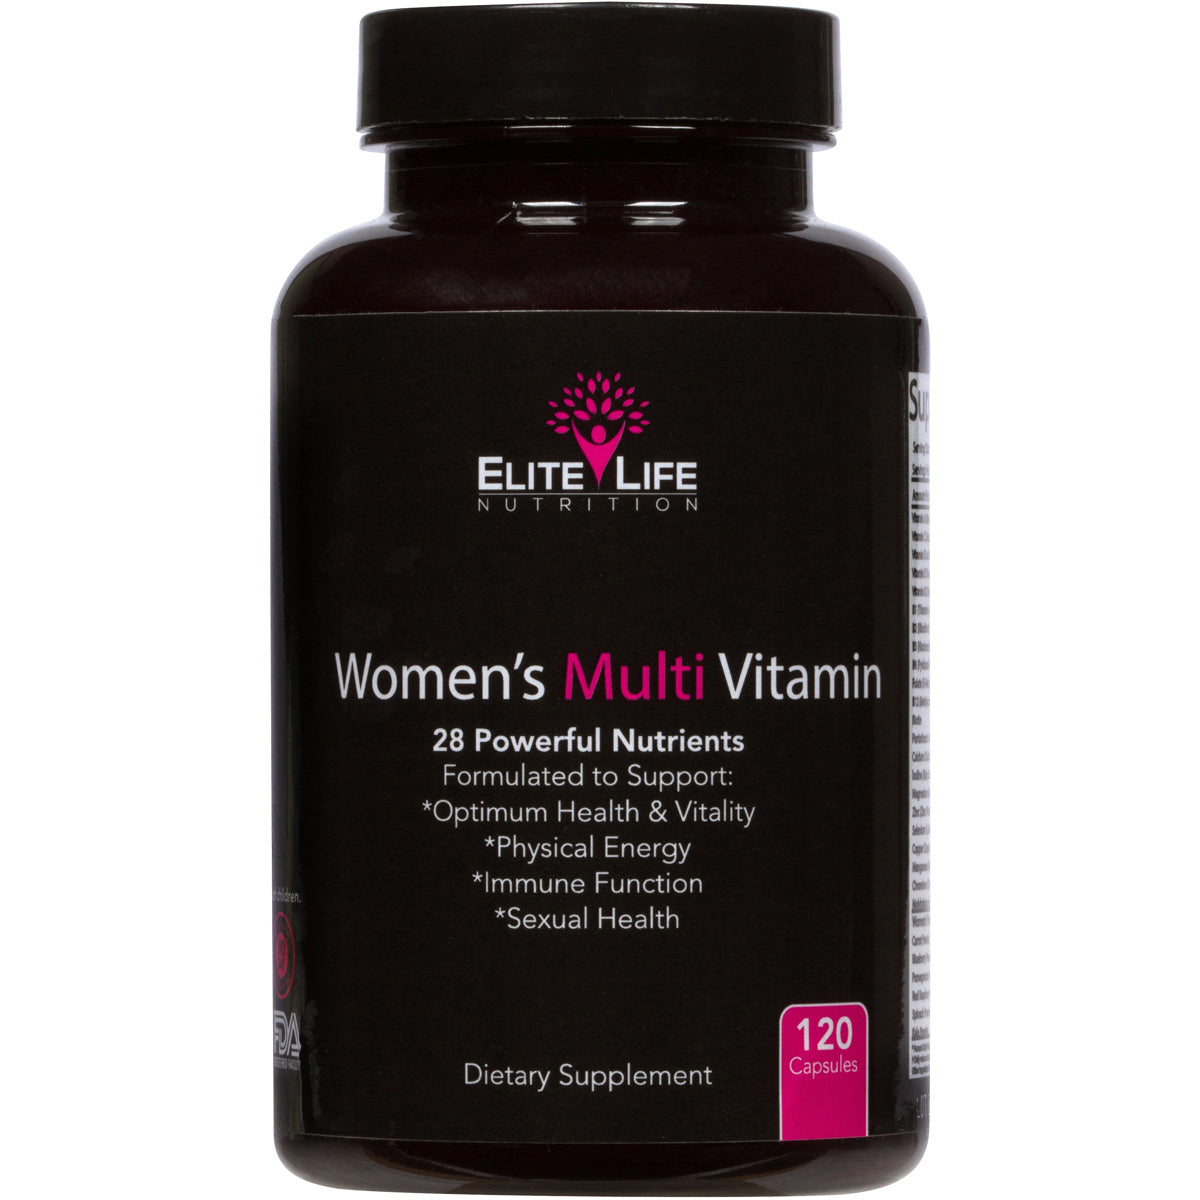 Women's Multi Vitamin - 28 Powerful Nutrients, Vitamins, and Minerals